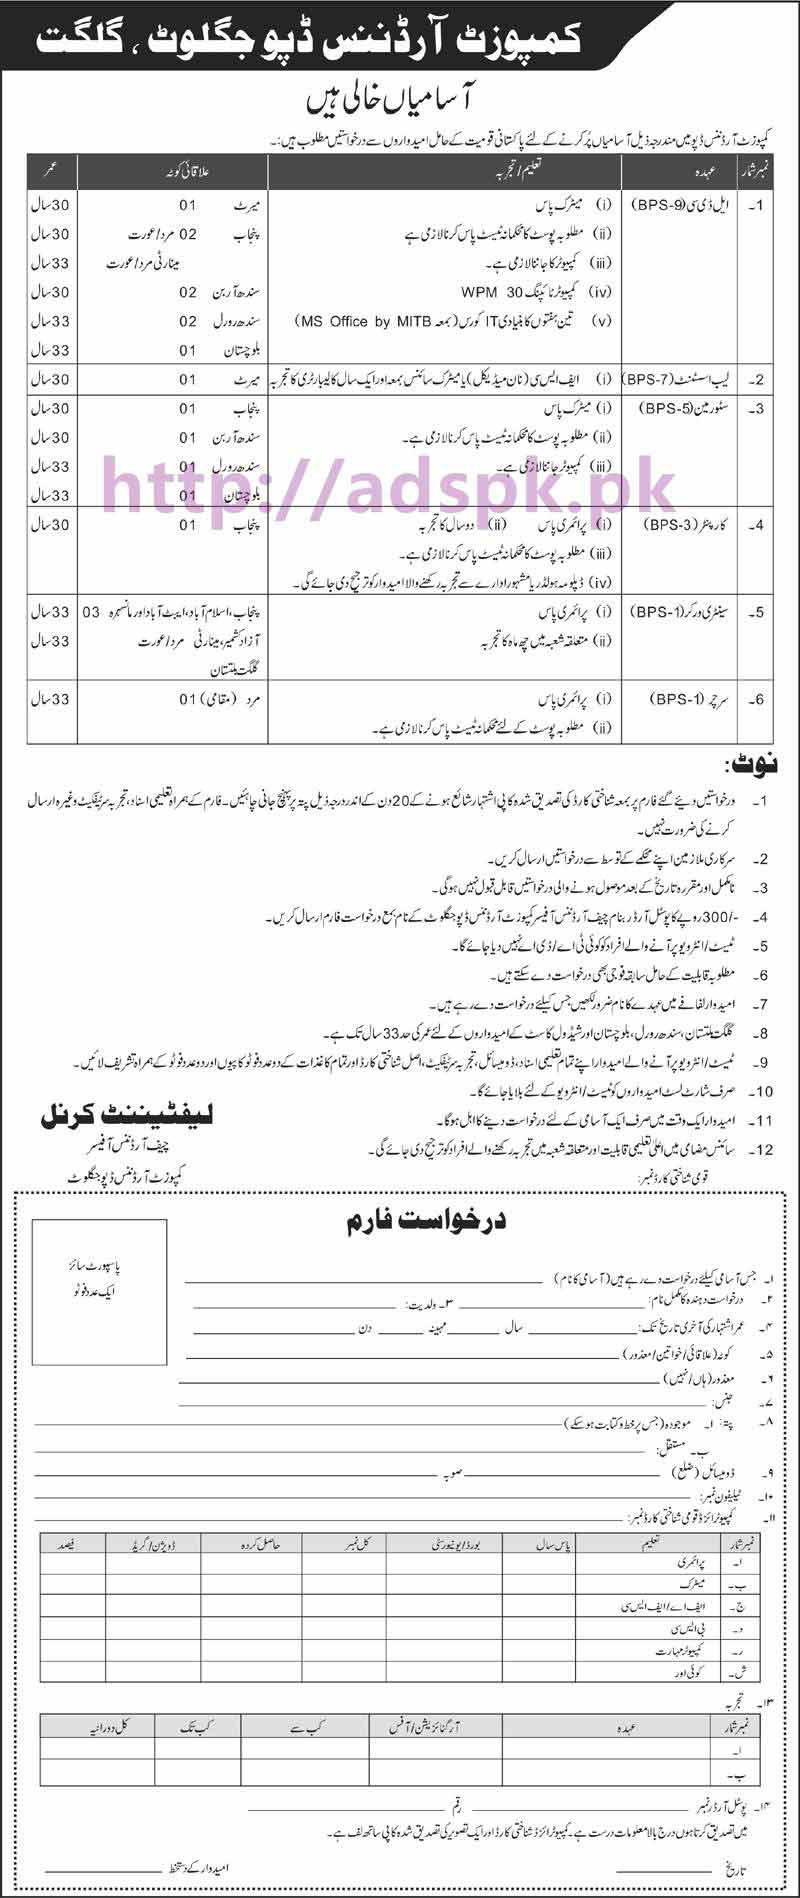 new career excellent jobs composite ordnance depot jaglot gilgit new career excellent jobs composite ordnance depot jaglot gilgit jobs for ldc lab assistant store man